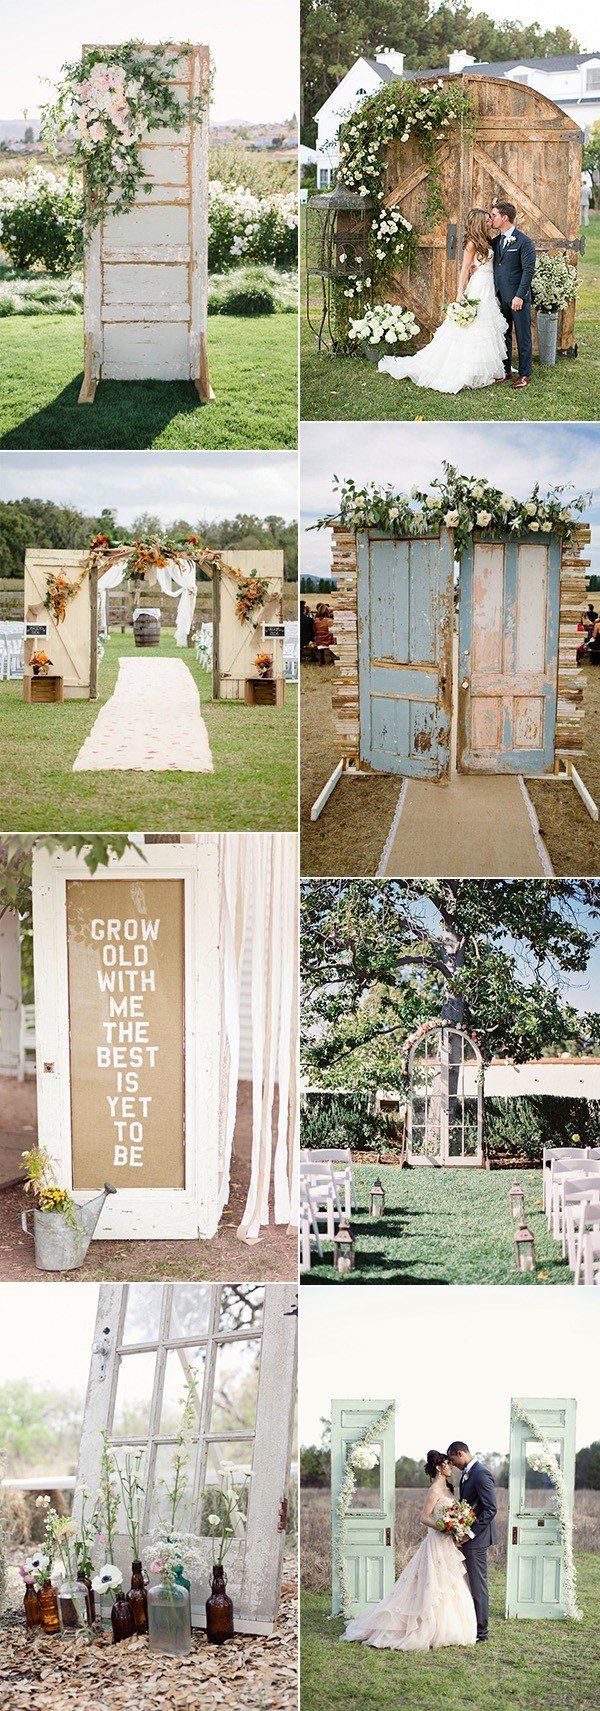 chic rustic wedding decoration ideas with old doors